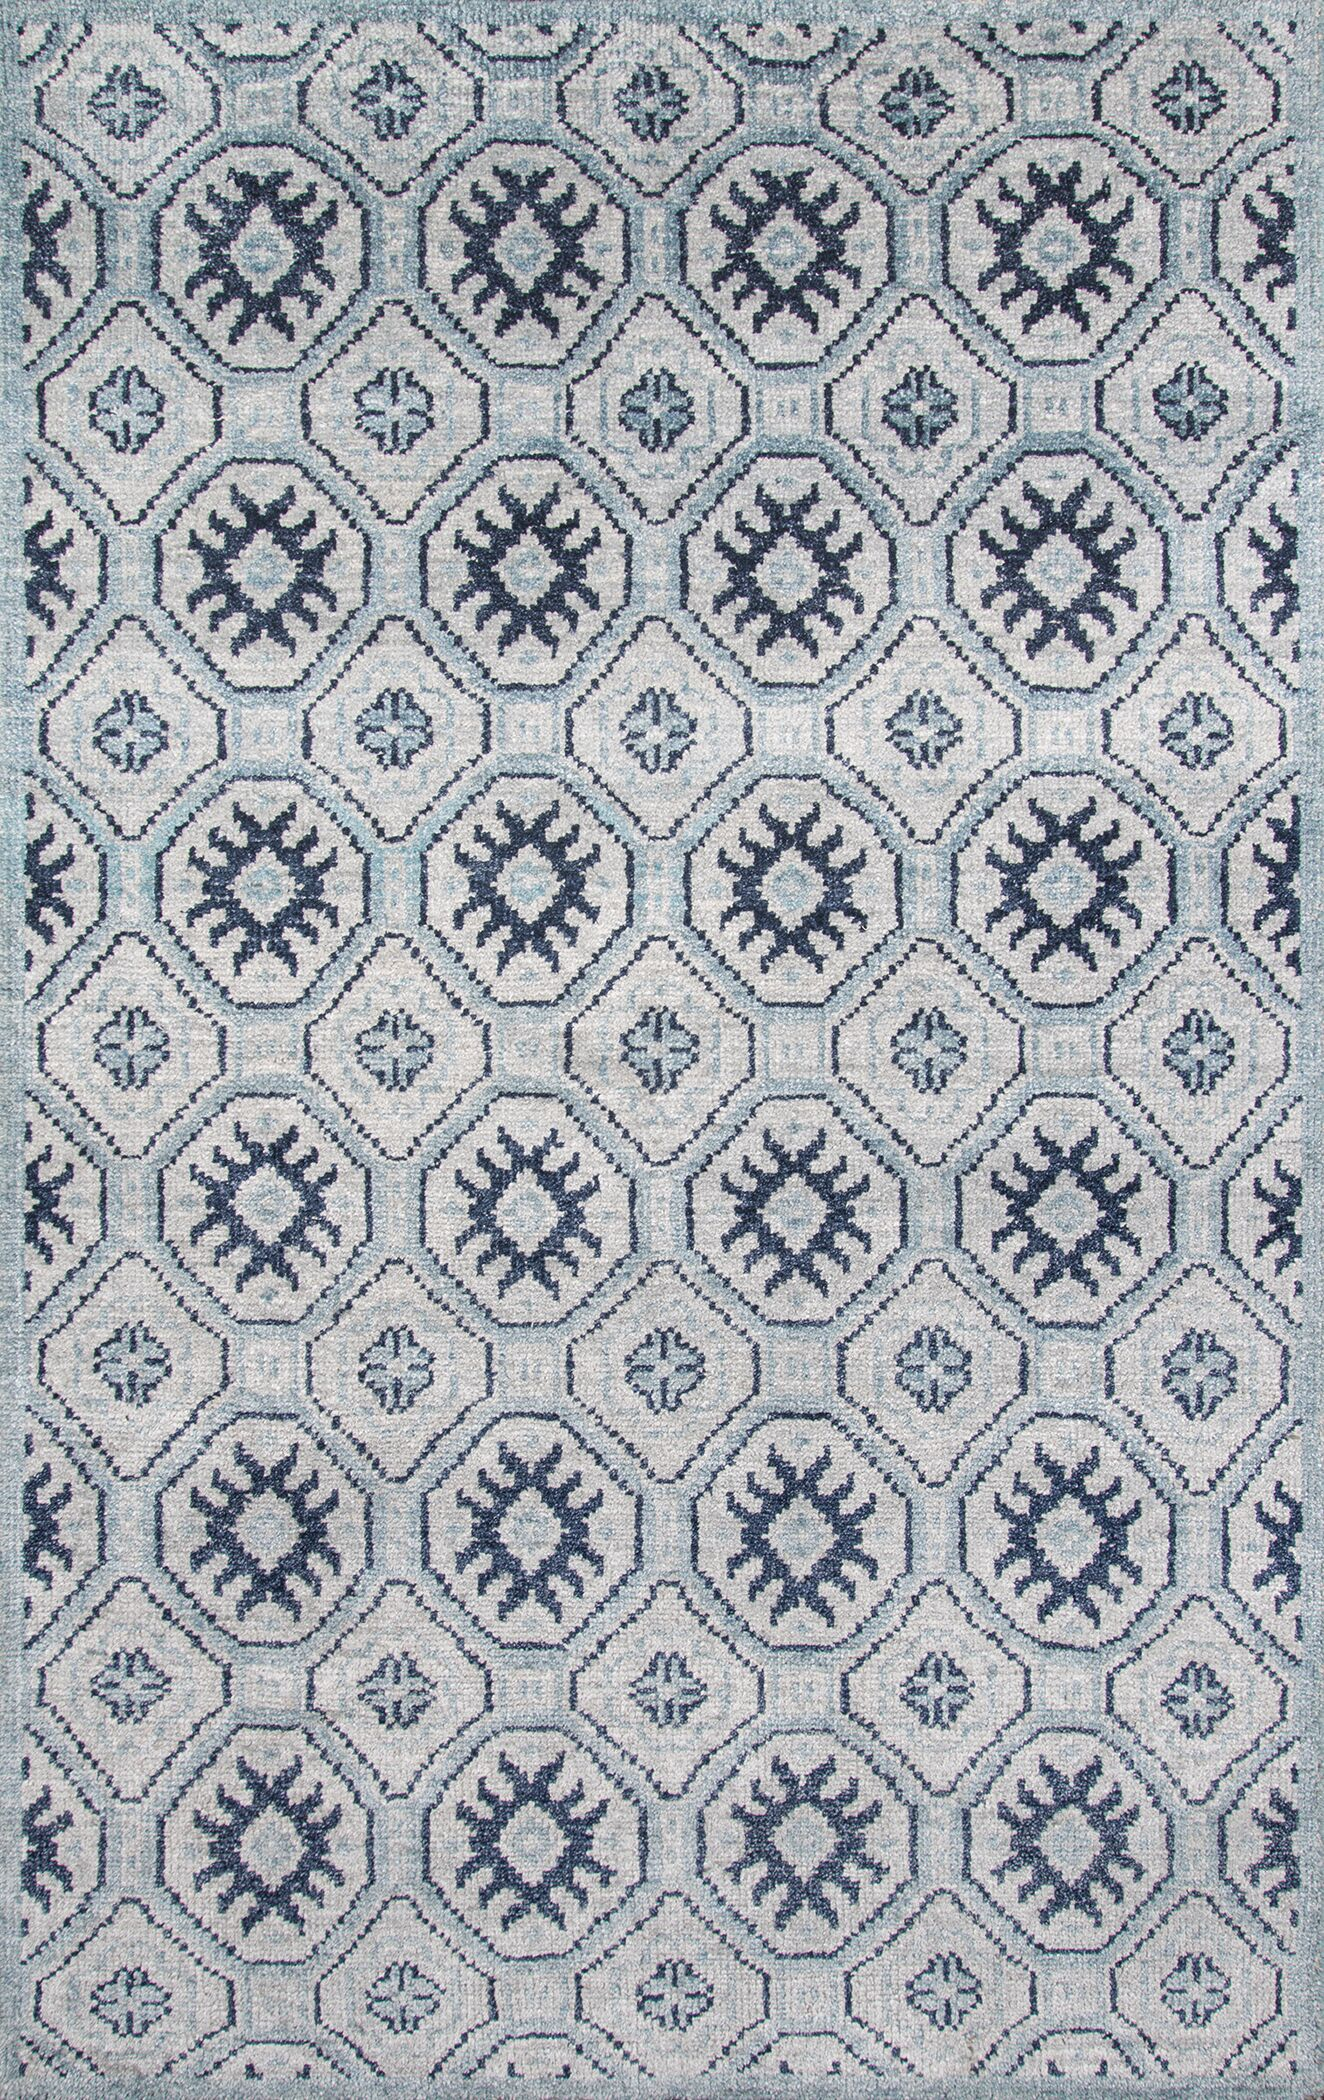 Zoey Hand-Knotted Blue/Gray Area Rug Rug Size: Rectangle 8' x 11'